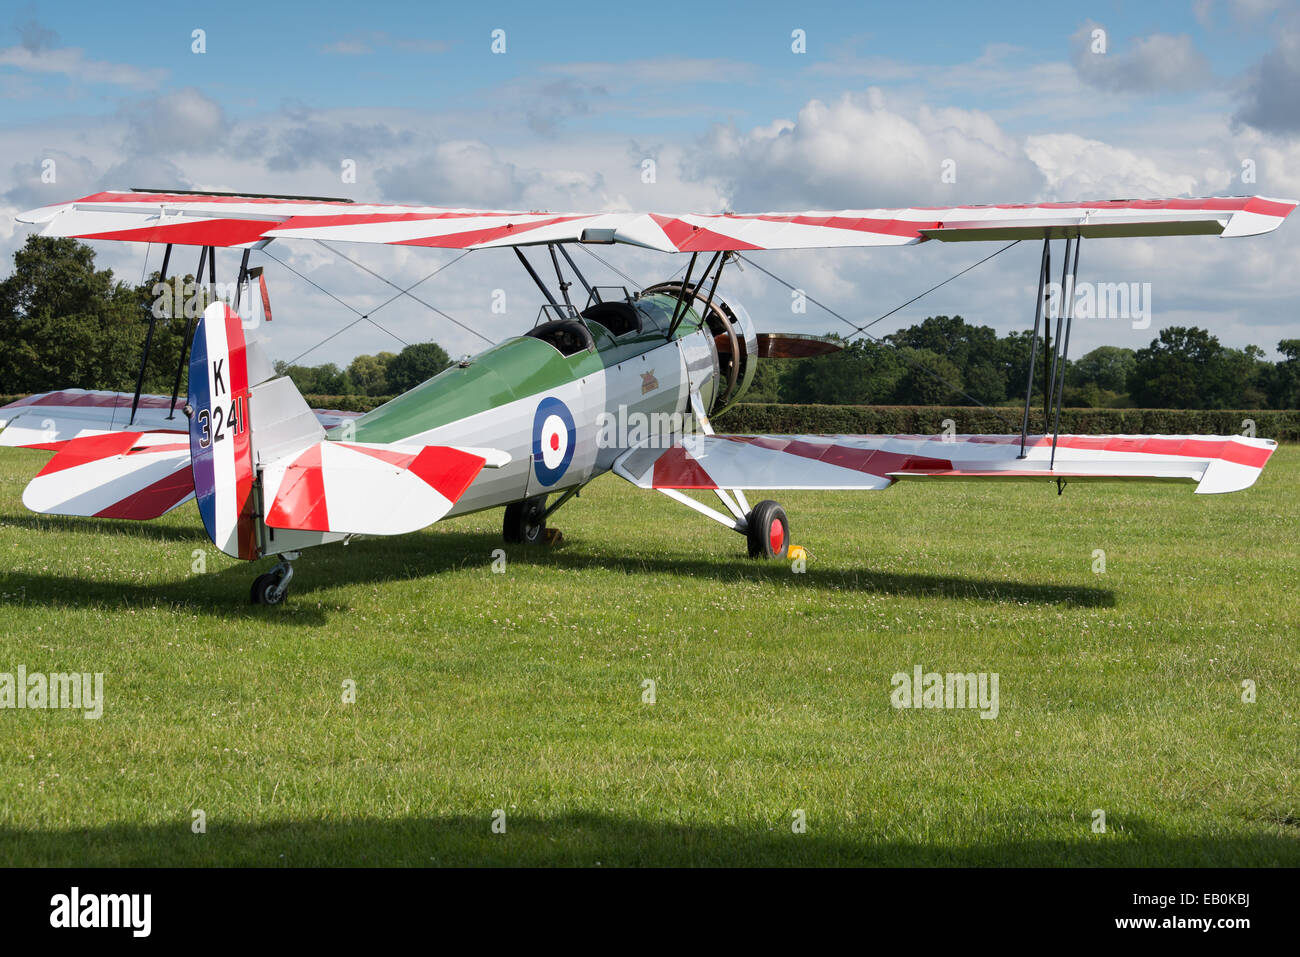 Biggleswade, UK - 29 June 2014: A vintage Avro Tutor bi plane on display at the Shuttleworth Collection air show. - Stock Image